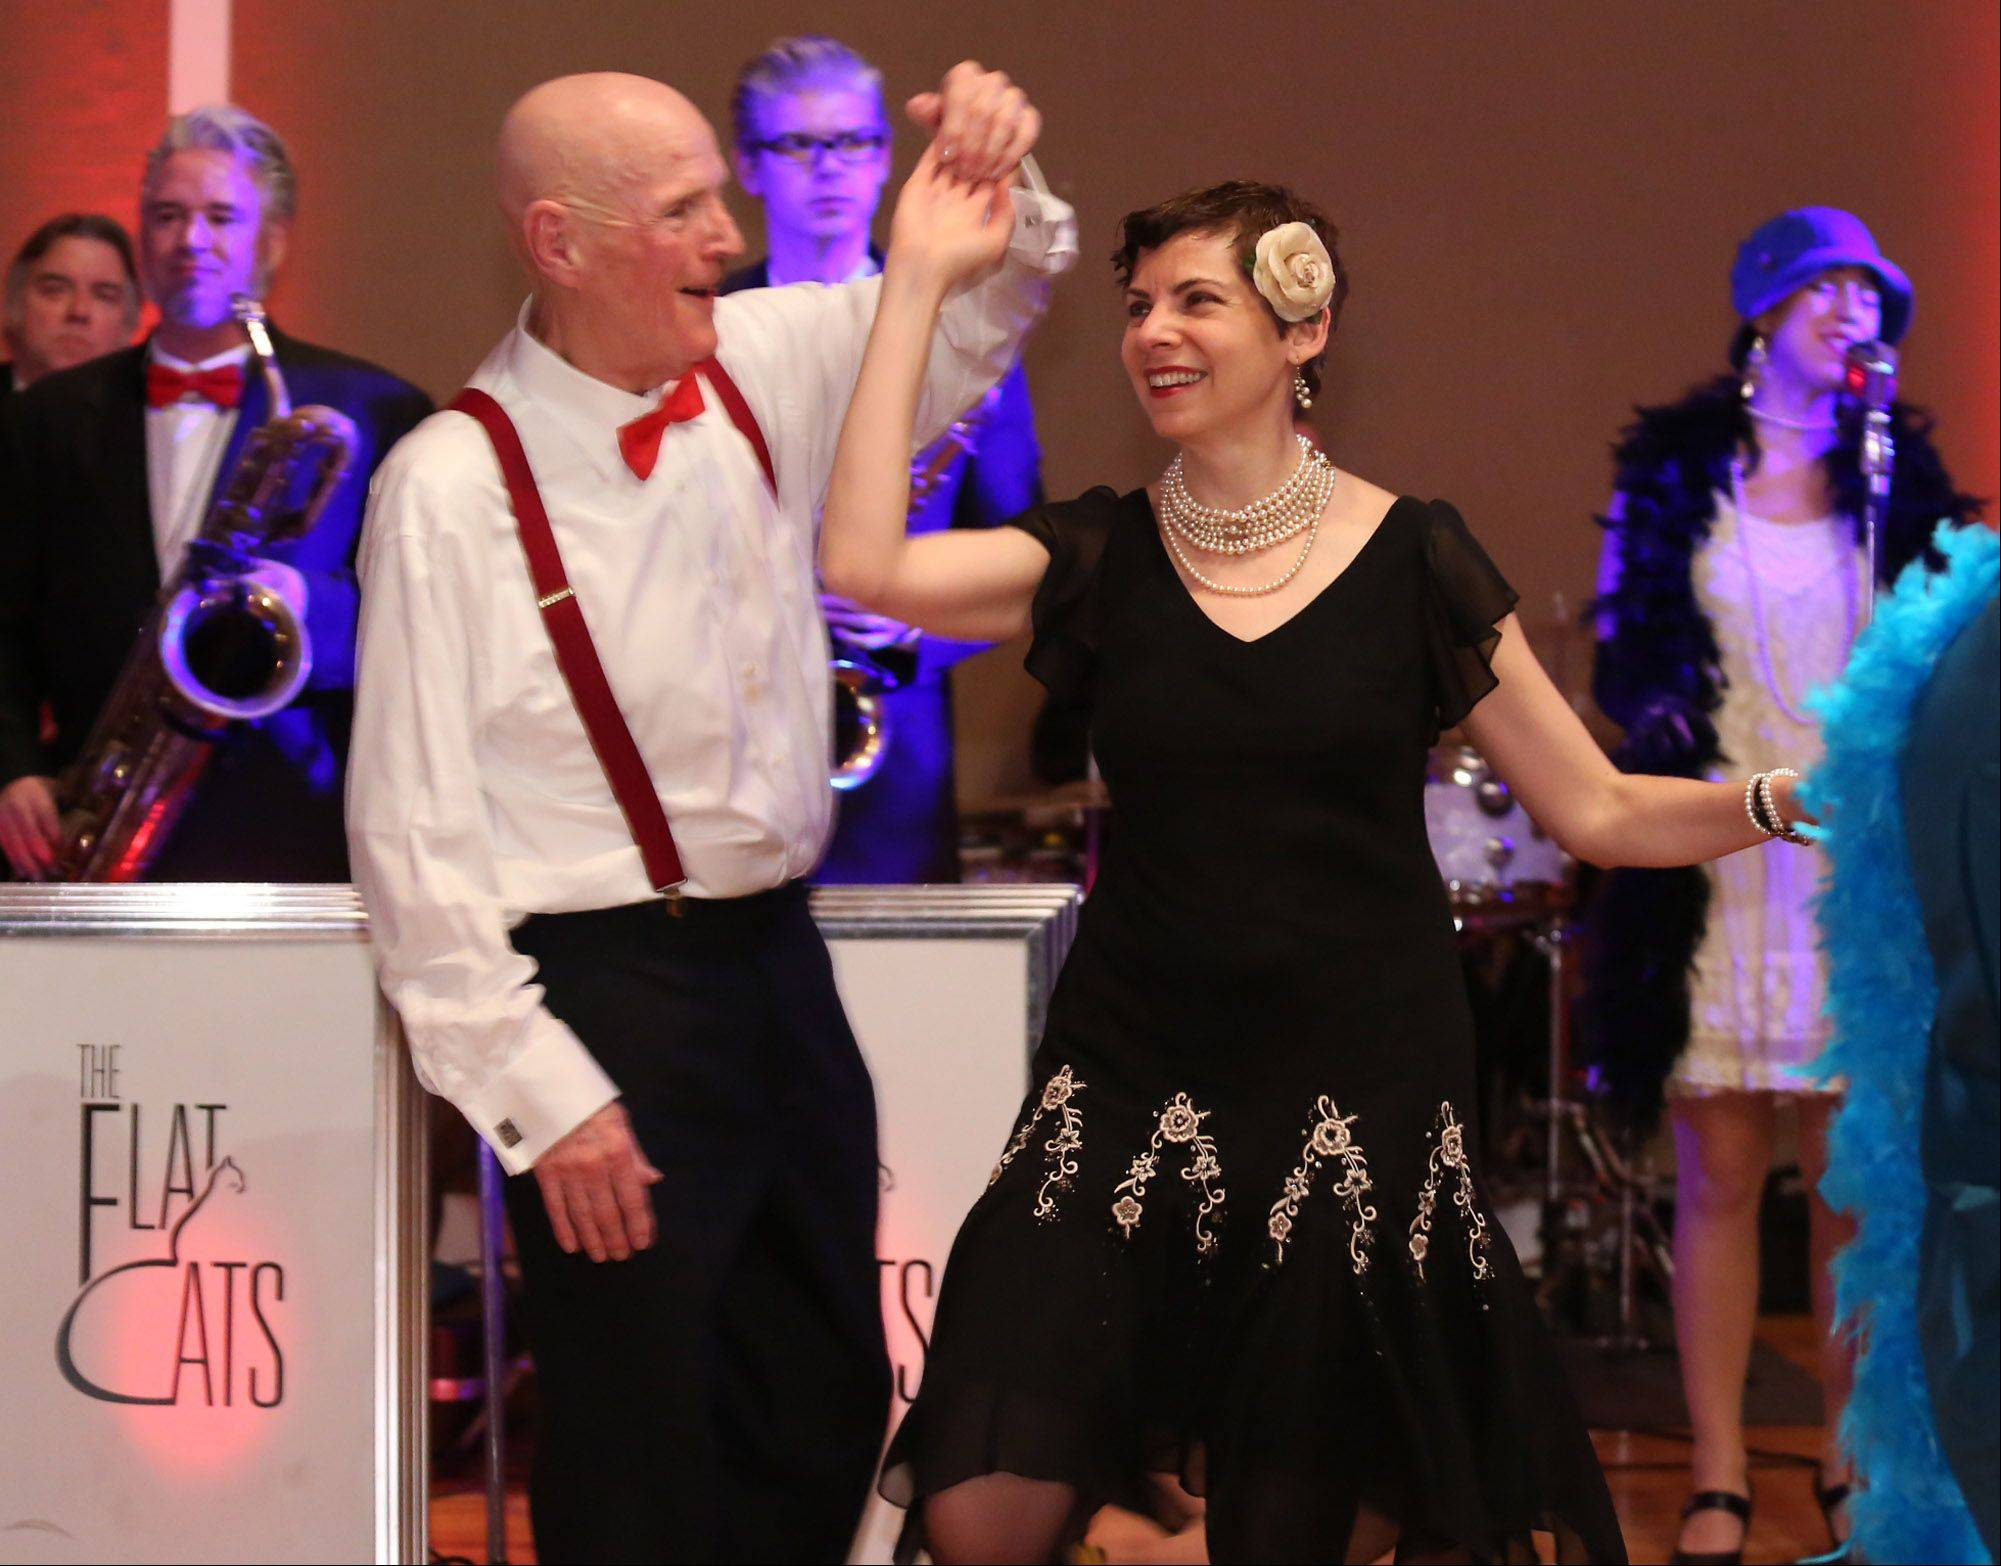 George LeClaire/gleclaire@dailyherald.com Tom Thomas of Sleepy Hollow dances with friend Mary Roback of Park Ridge at the Arlington Heights Historical Society�s Speakeasy FUNdraiser �A Celebration of the Decades: the Roaring 1920s� event at the Metropolis Ballroom on Friday in Arlington Heights.